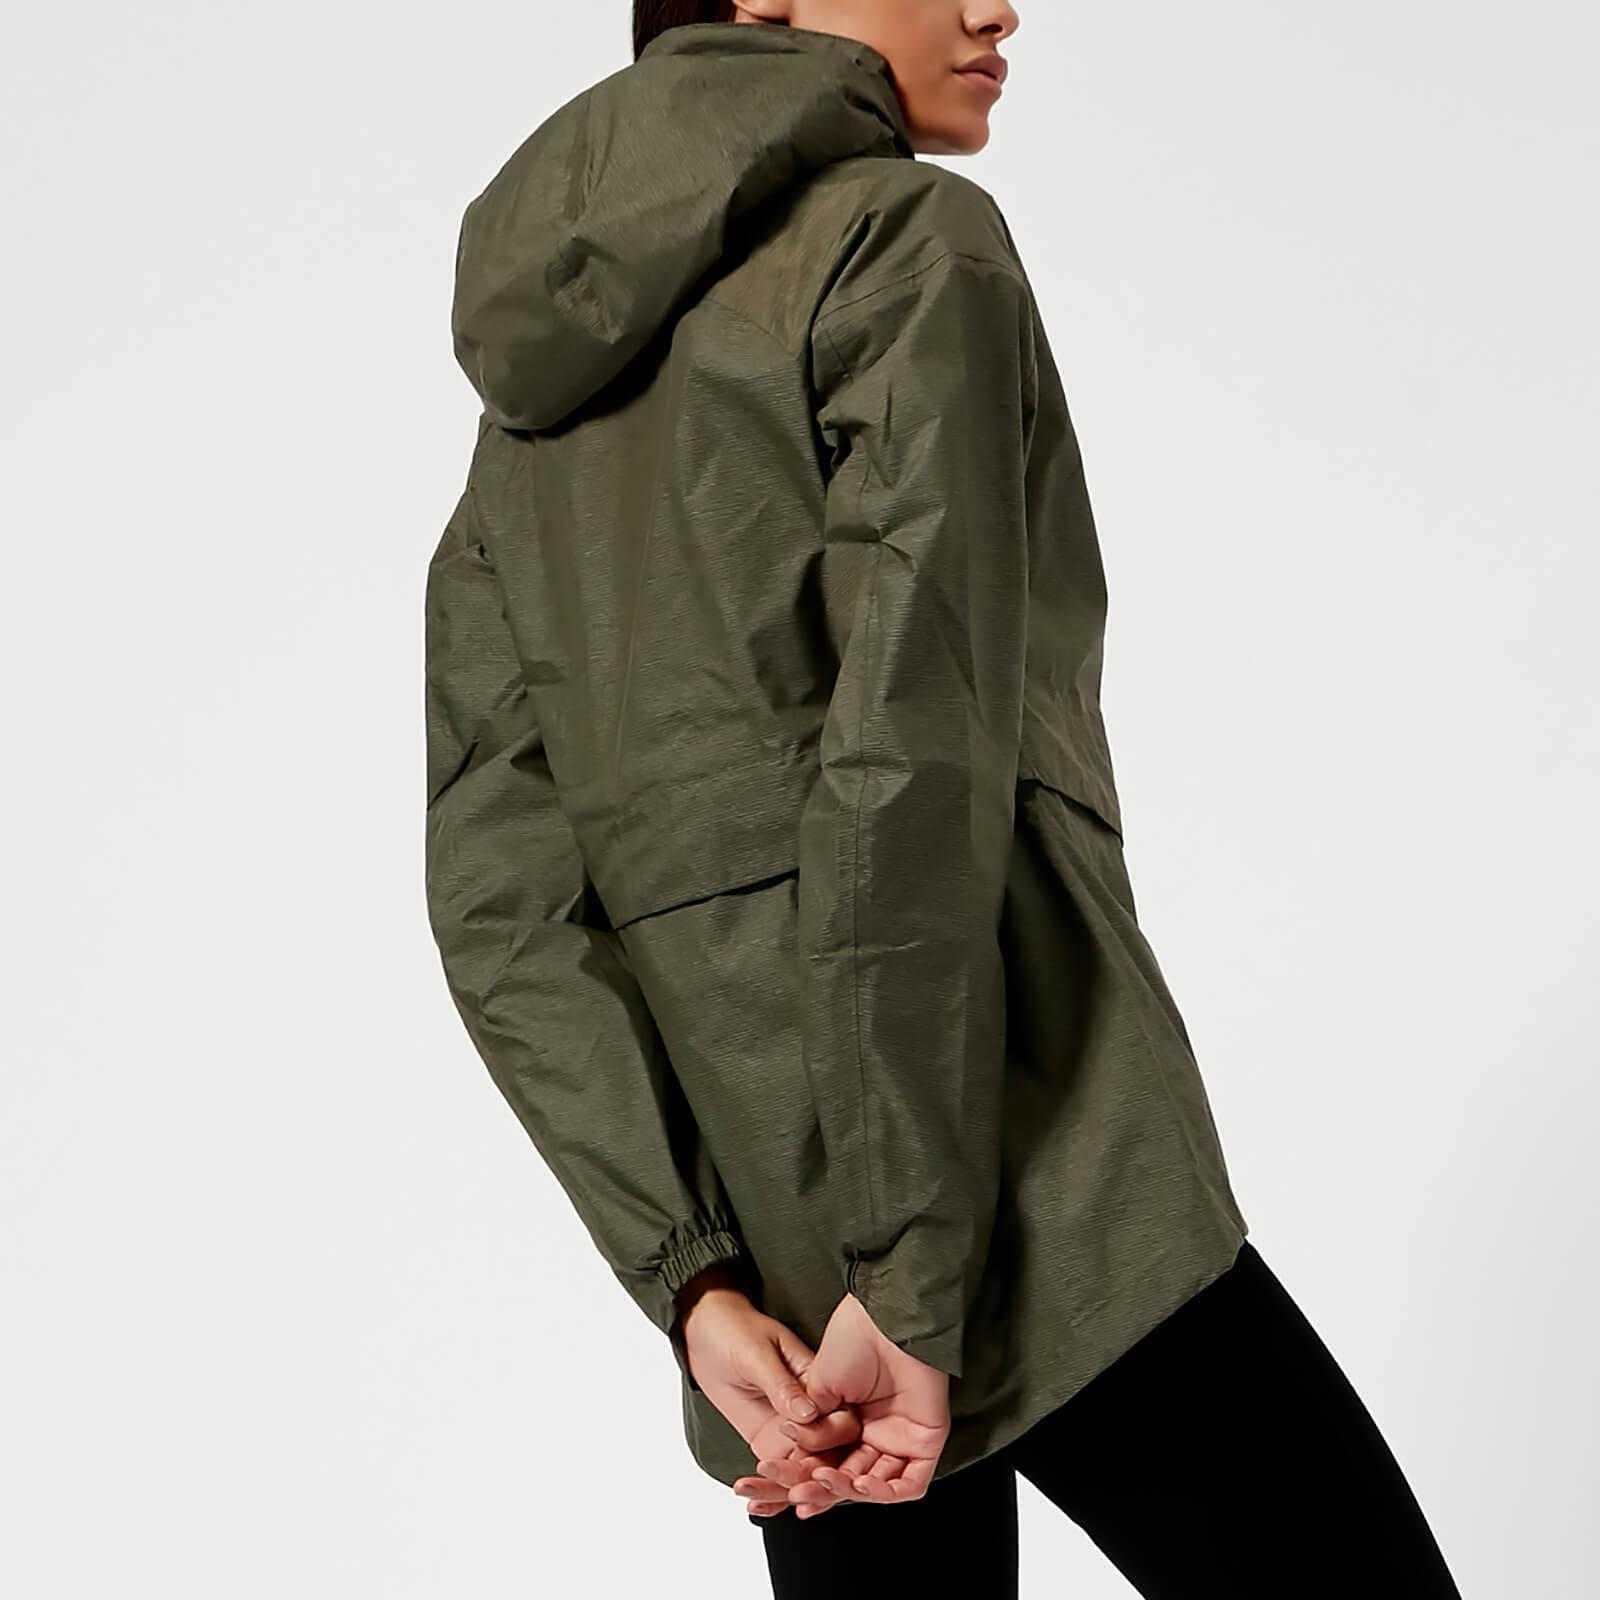 f78e0761f The North Face Inlux Dryvent Jacket in Green - Lyst